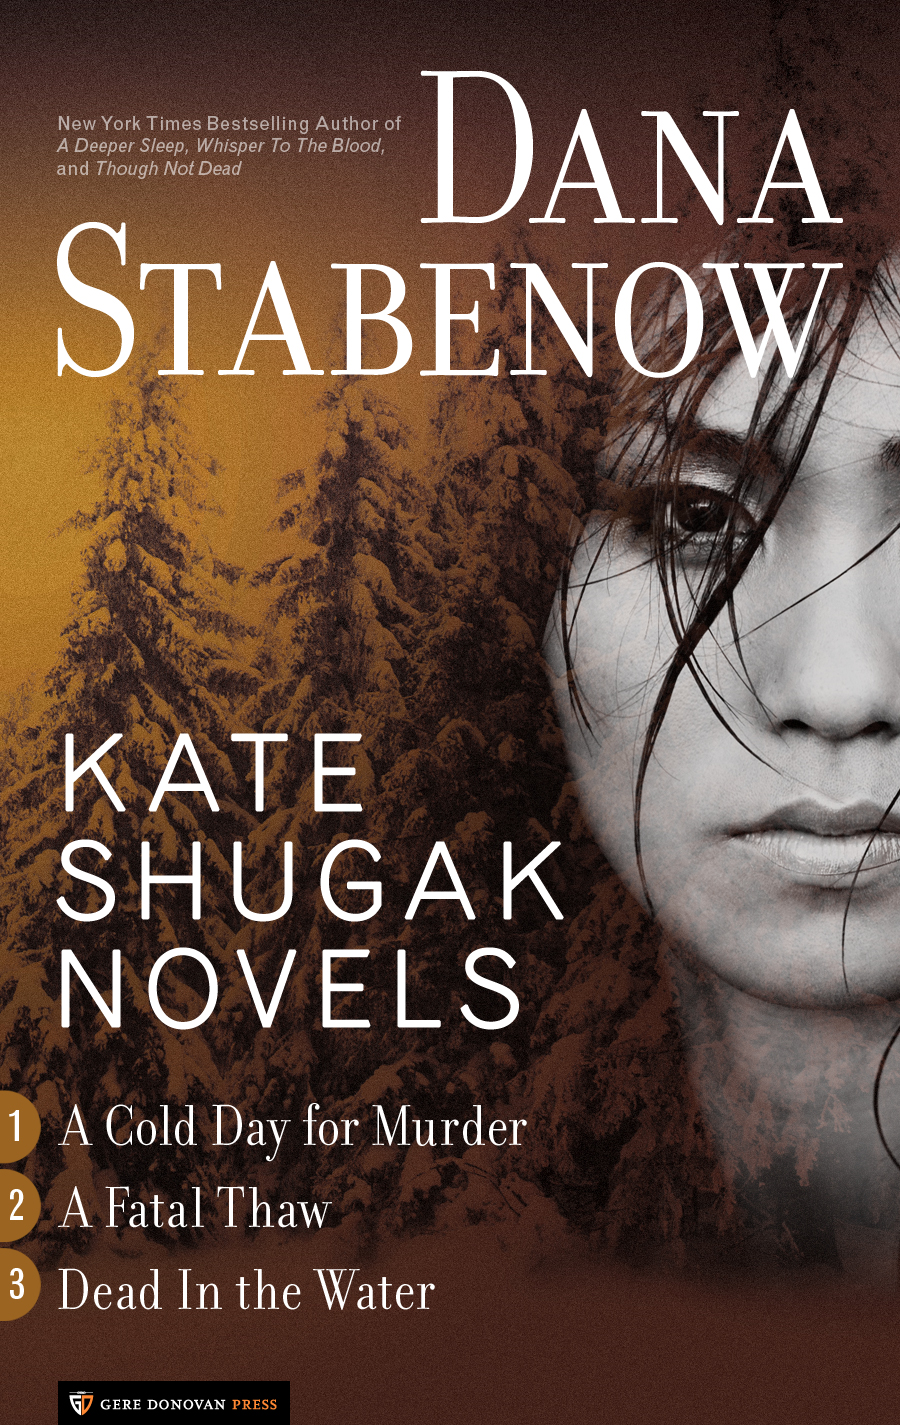 The Kate Shugak Novels, Vol. 1